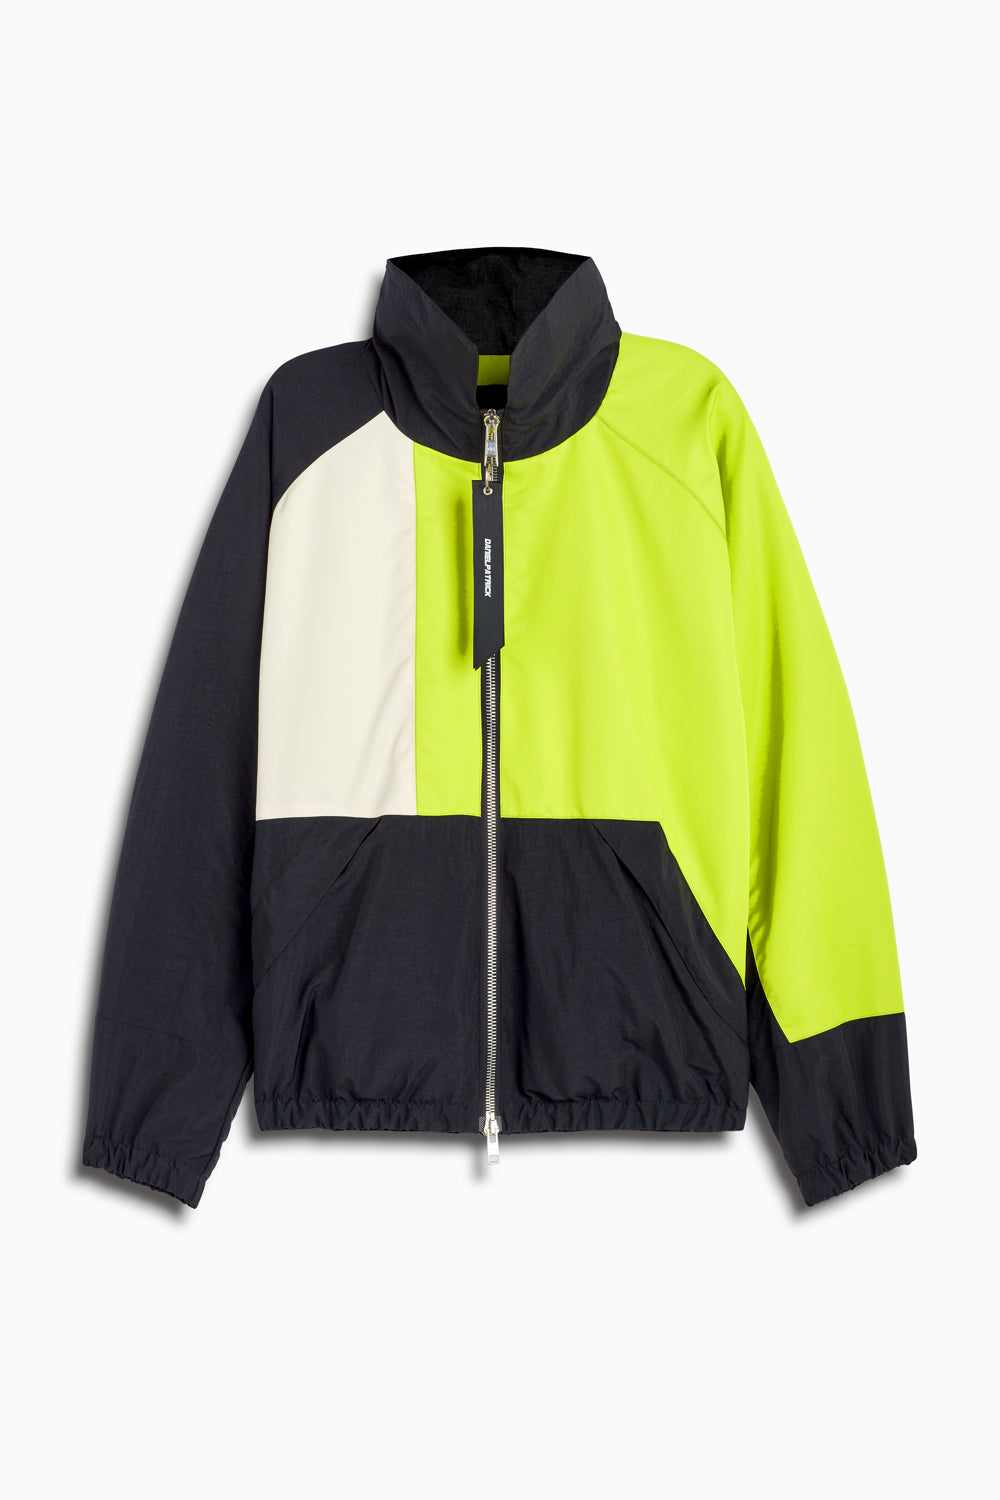 93 jacket in black/lime/ivory by daniel patrick